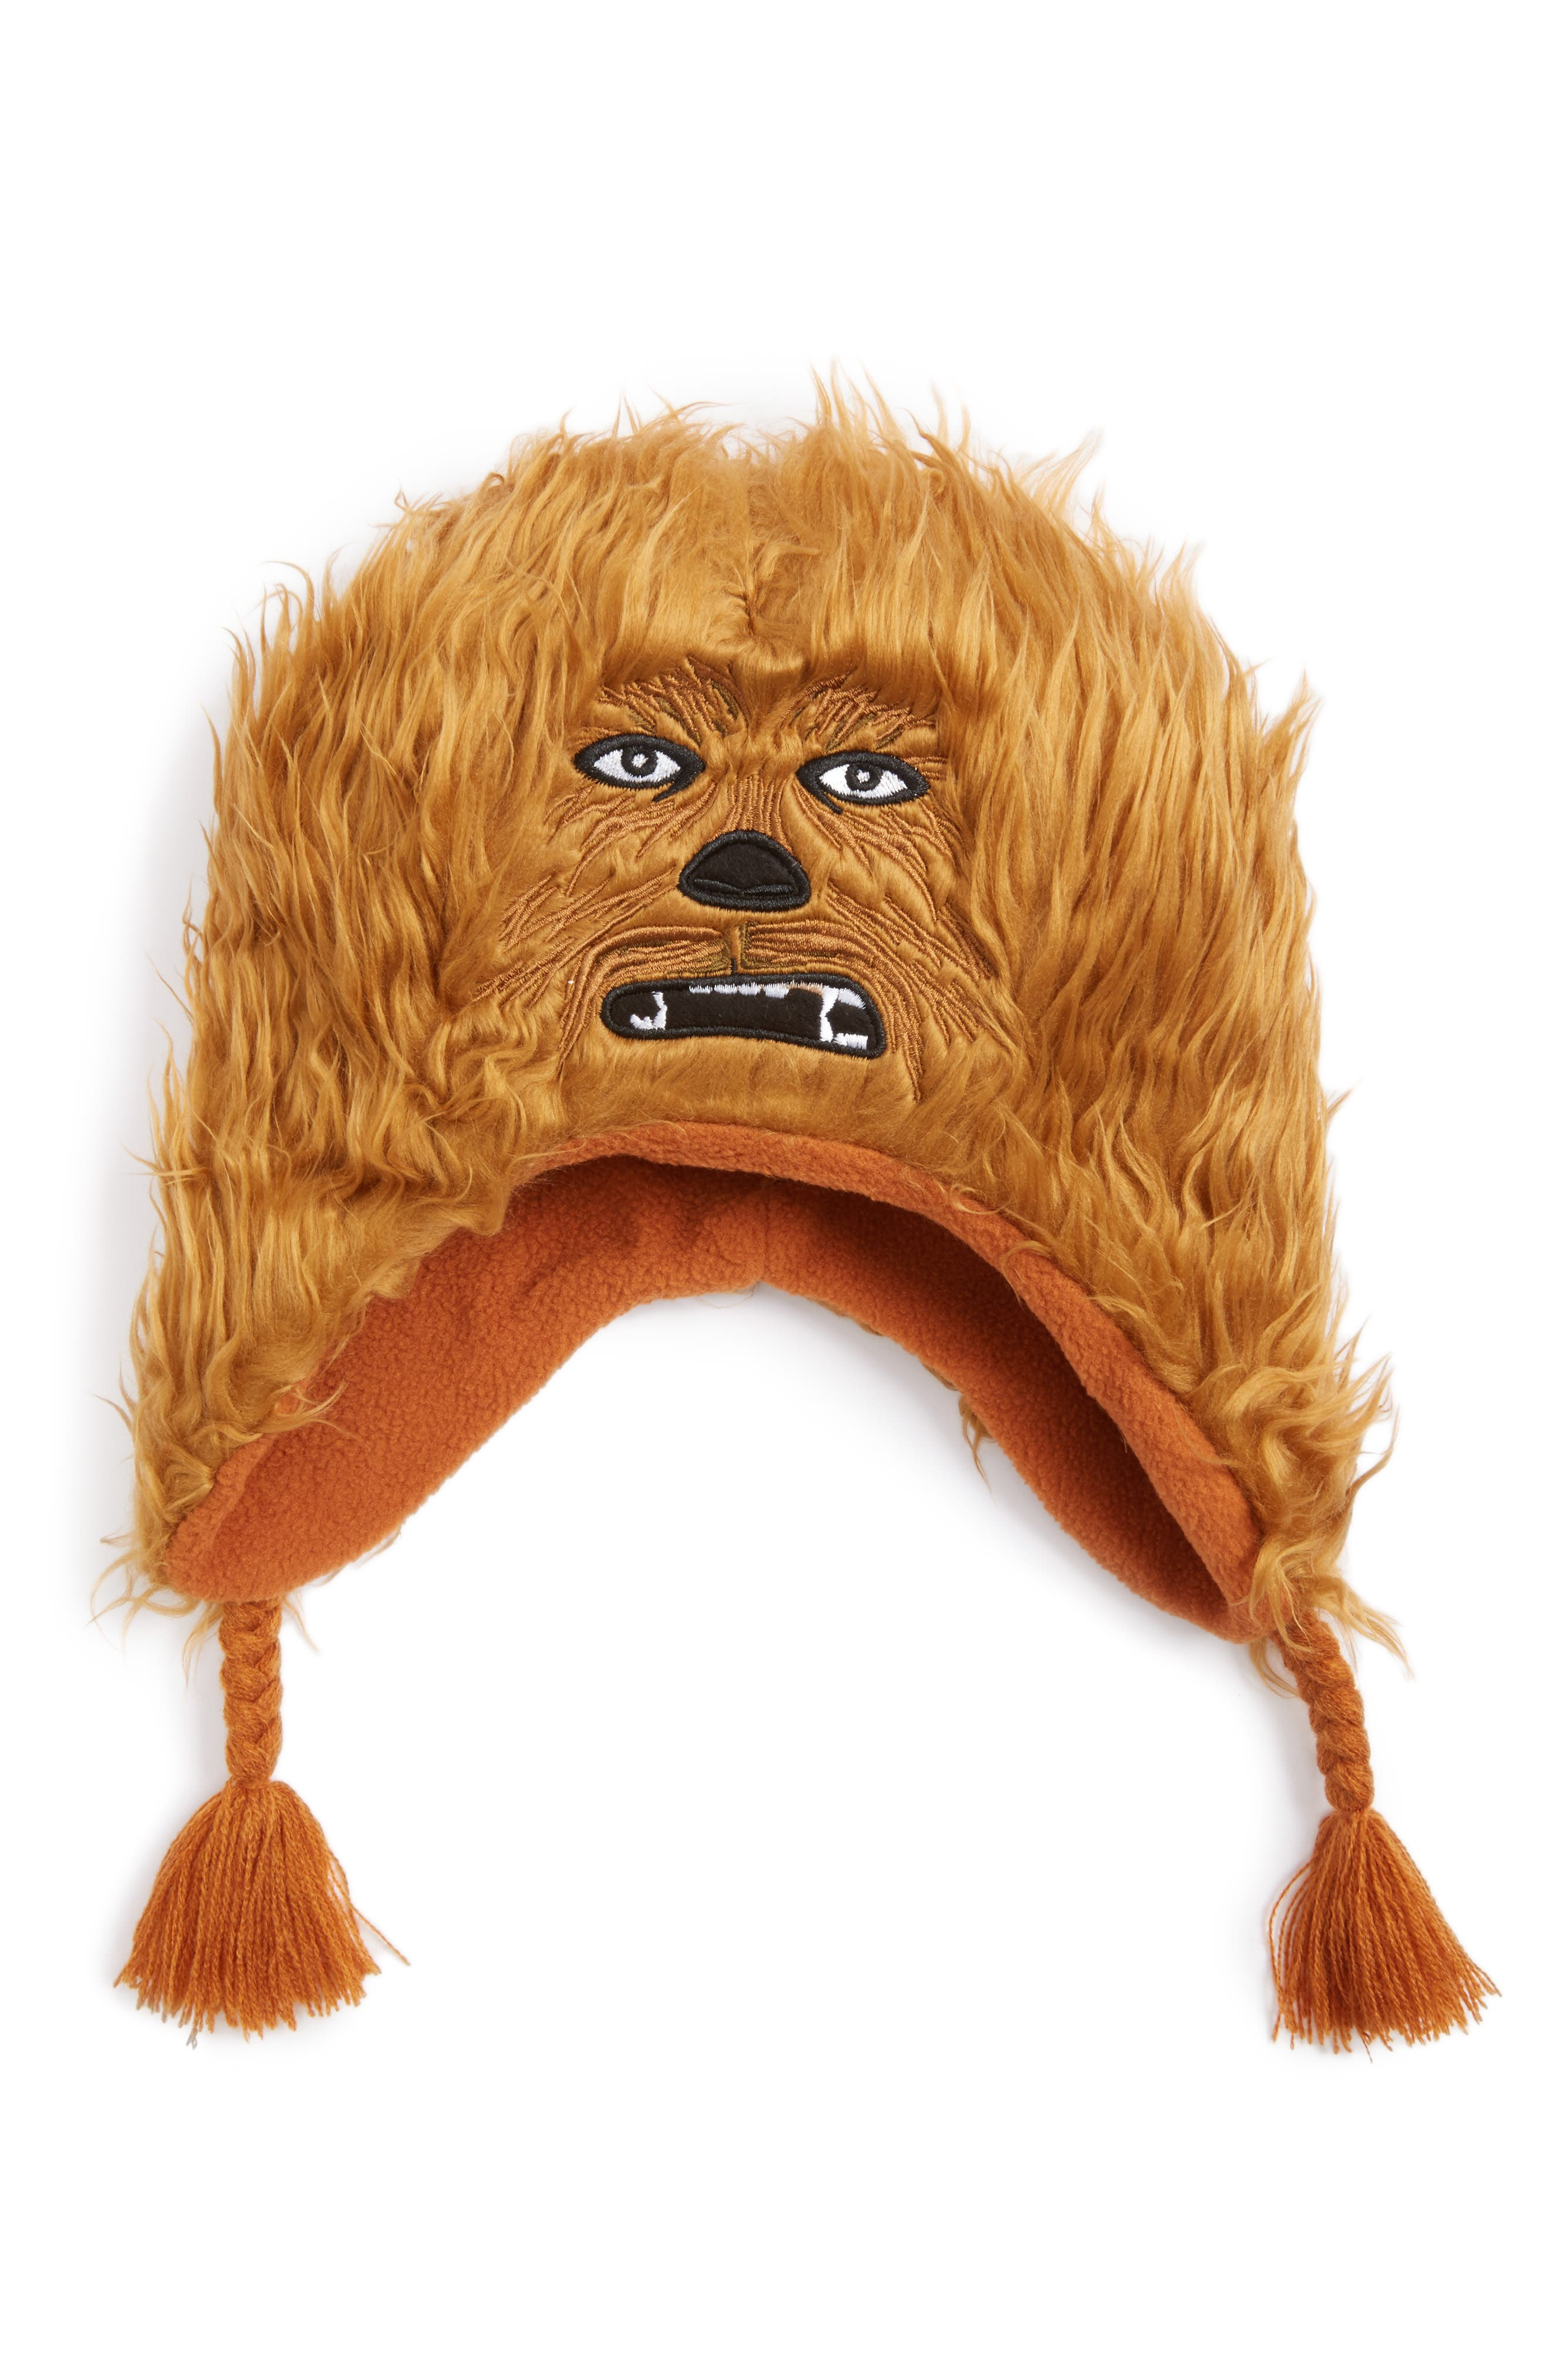 NOLAN GLOVE,                             Star Wars<sup>™</sup> Chewbacca Hat,                             Alternate thumbnail 2, color,                             200